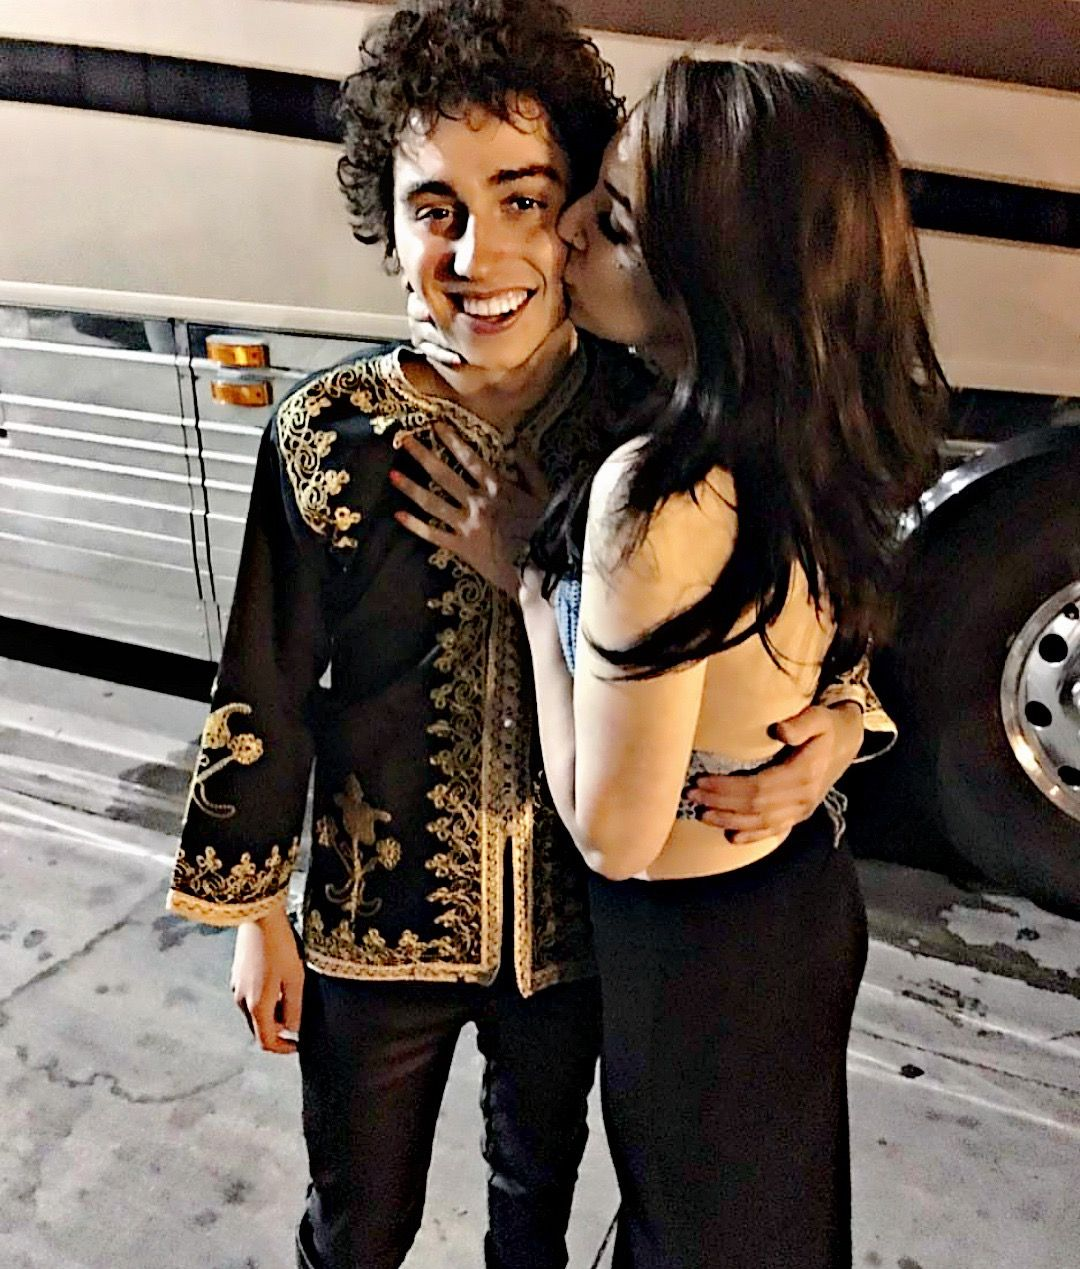 So jealous of this very lucky fan. Can't say I wouldn't do